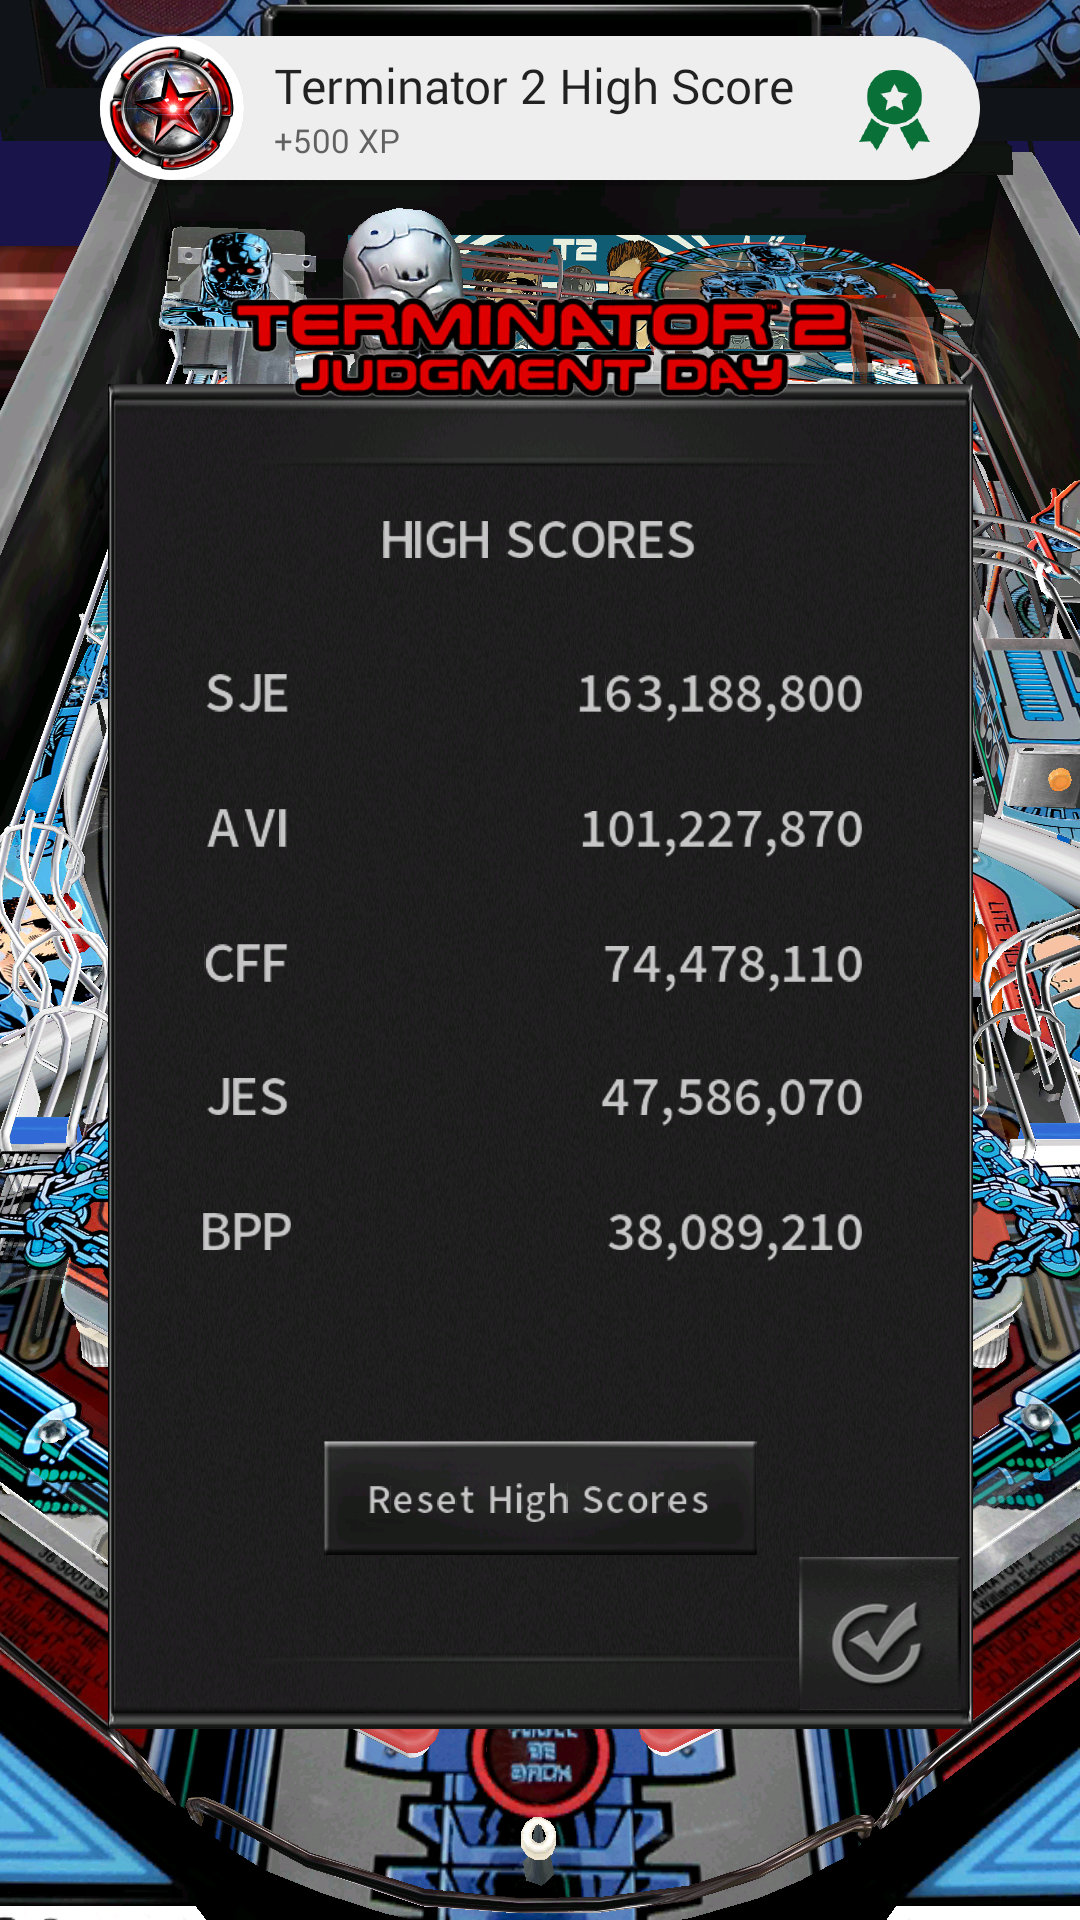 JES: Pinball Arcade: Terminator 2 (Android) 47,586,070 points on 2016-12-06 15:40:46